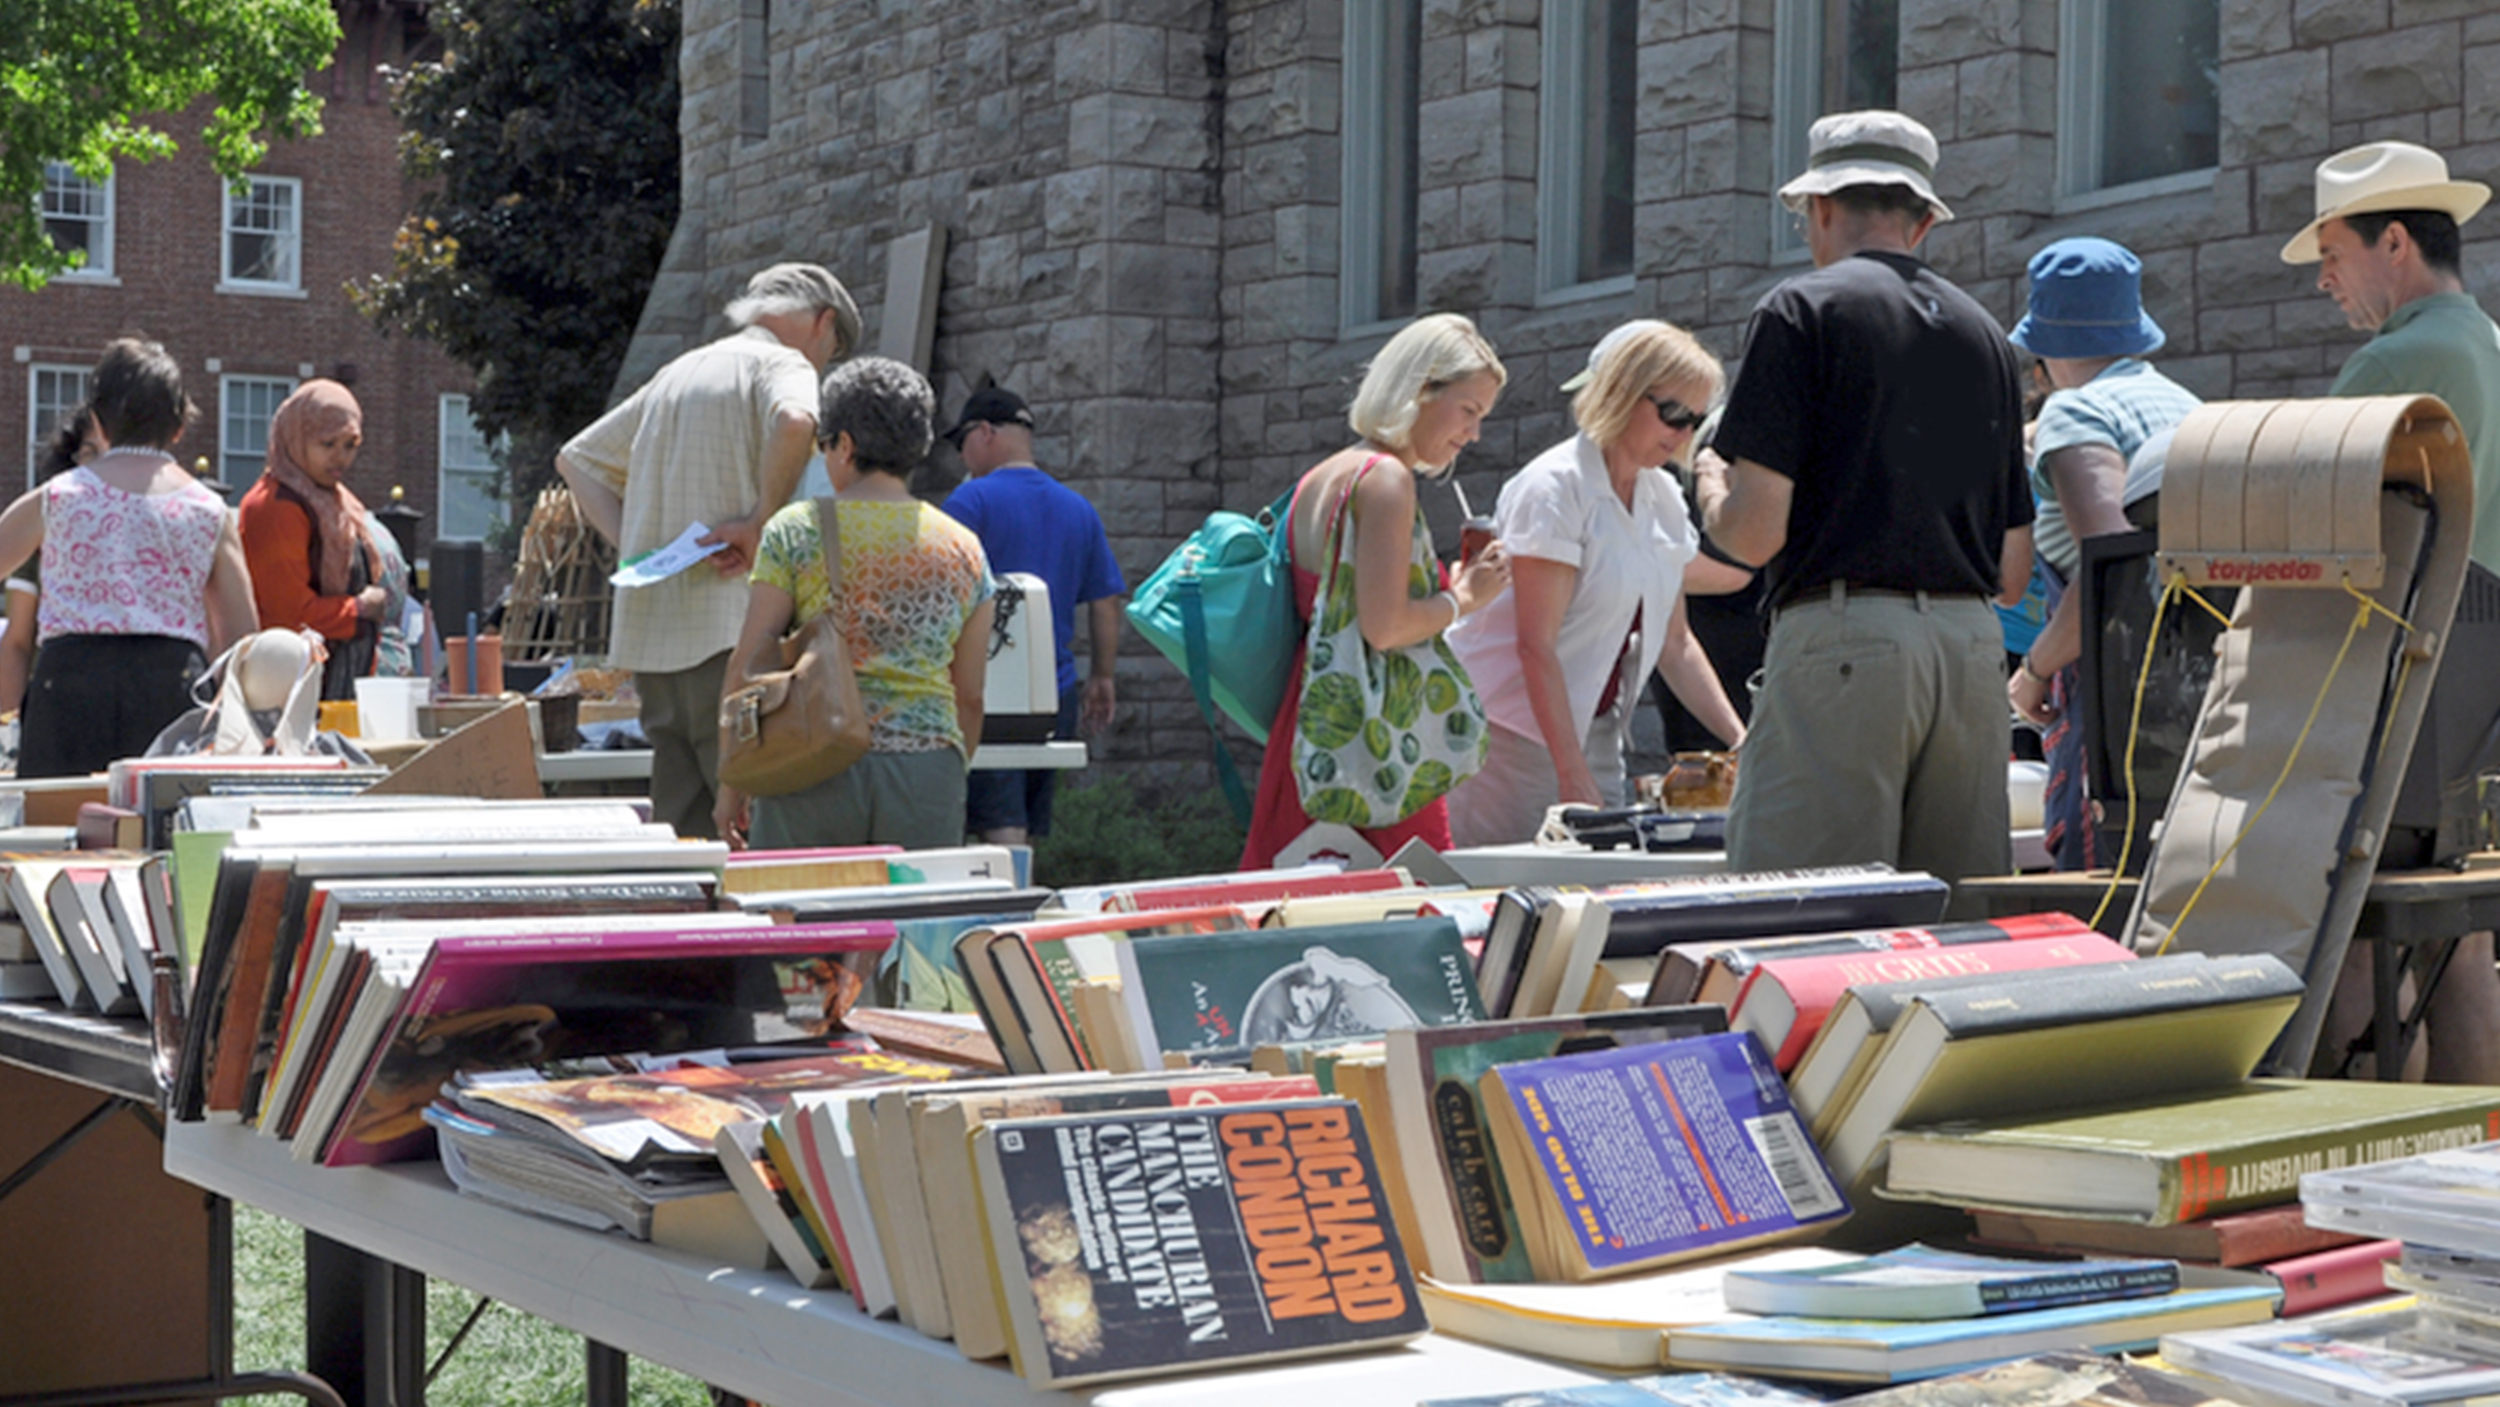 To Garage: How To Make More Money At A Garage Sale